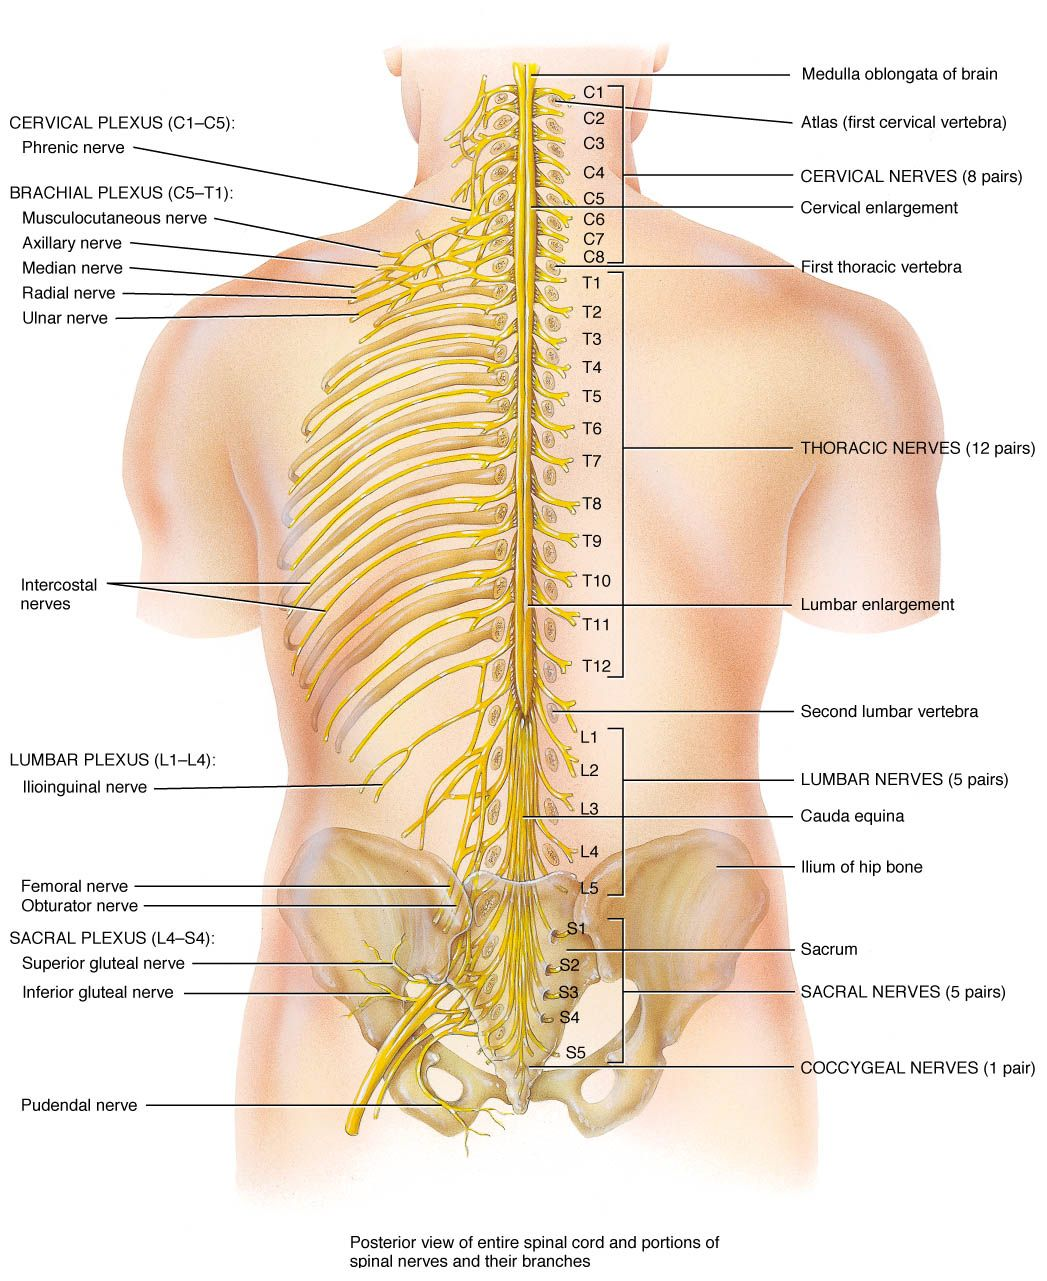 hight resolution of spinal nerves and branches